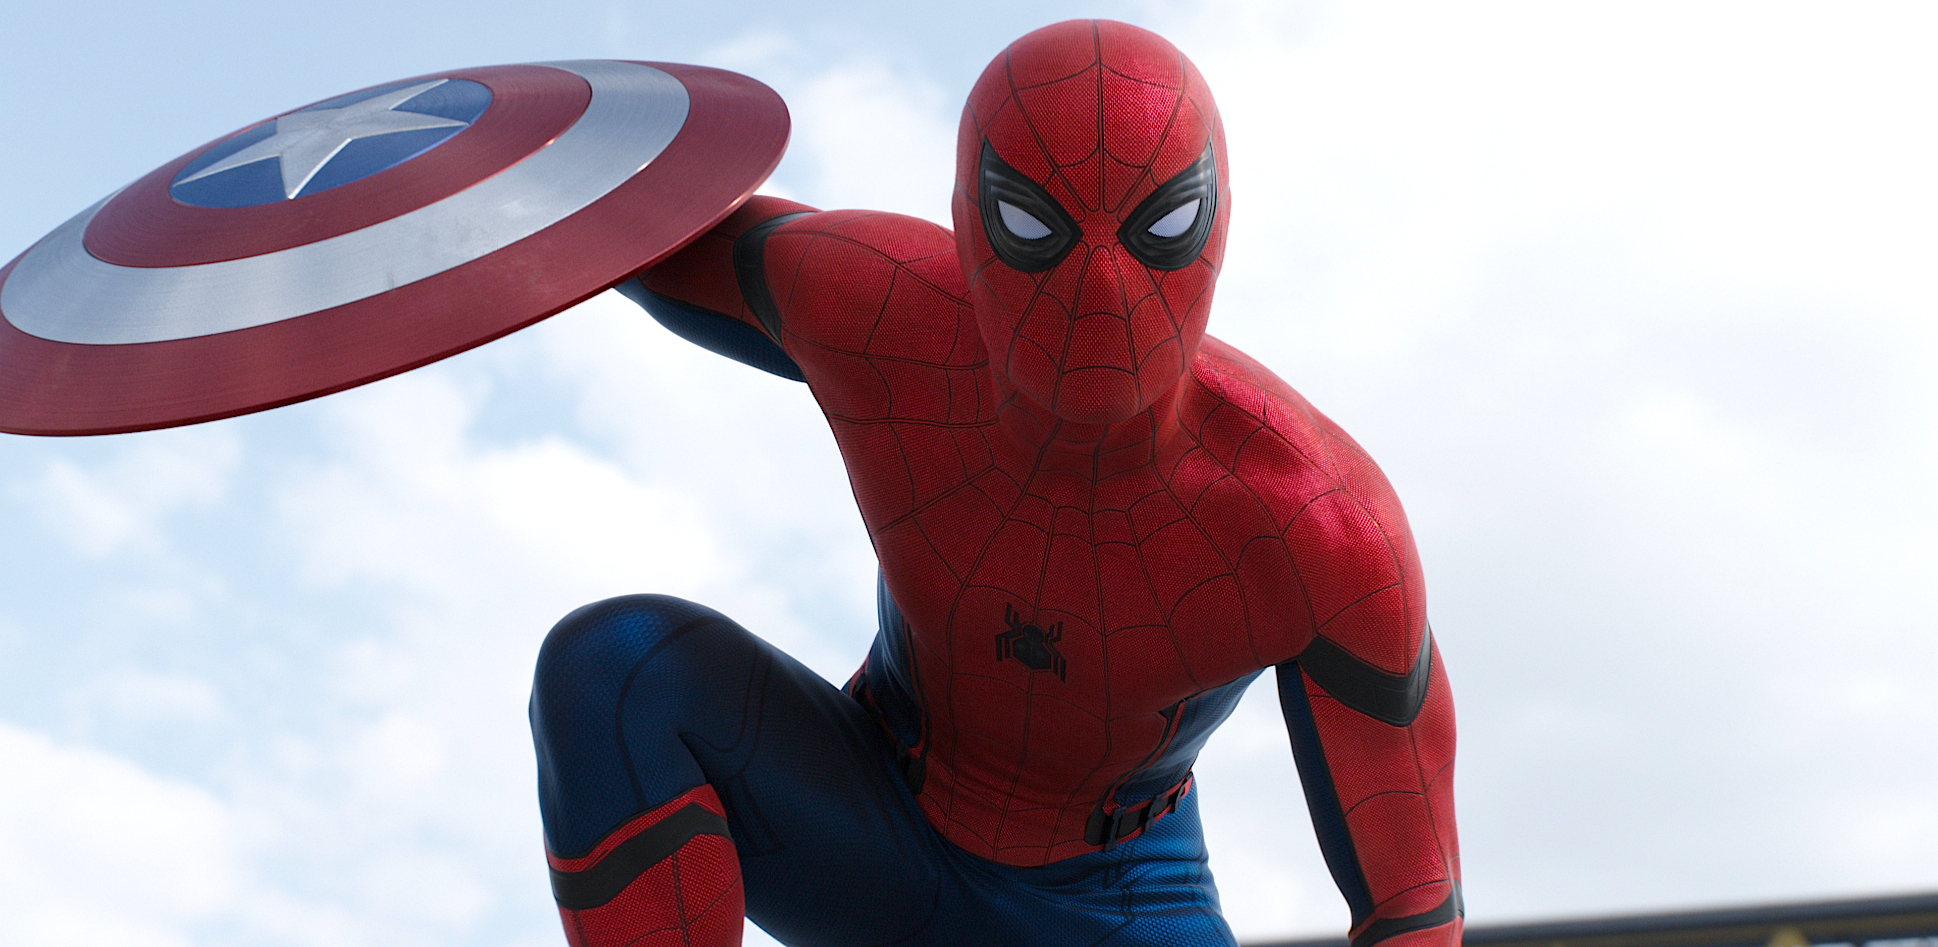 Avengers Spider-Man Homecoming Civil War Peter Park Tom Holland Cosplay Costume